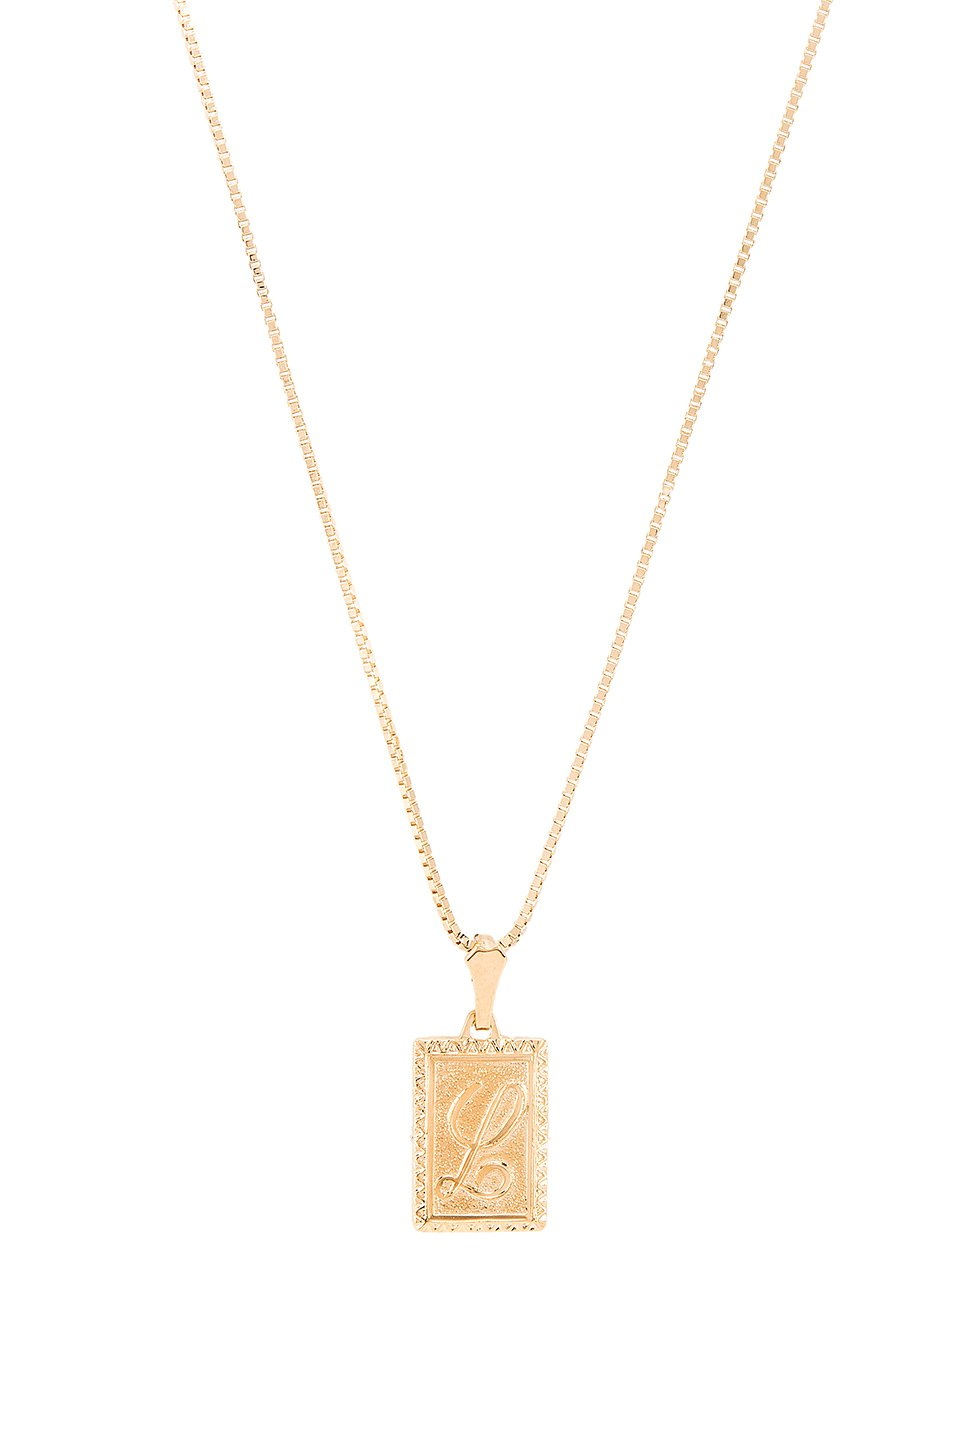 The London L Initial Necklace